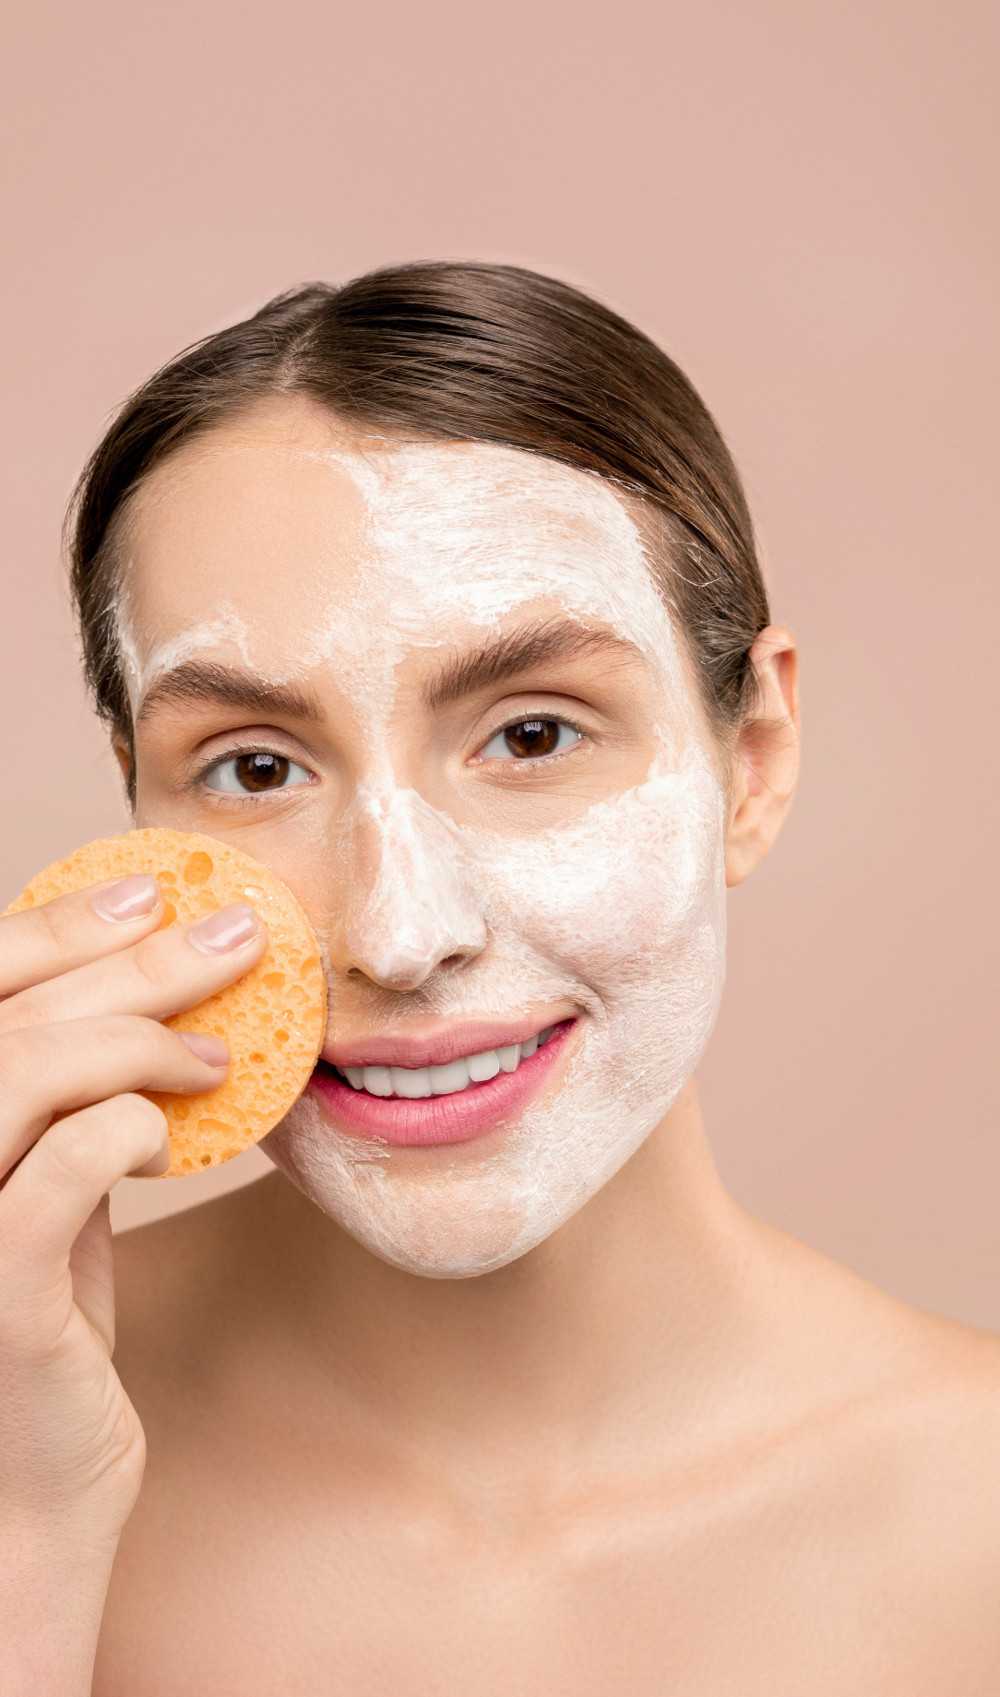 woman with white soap on face 3762473